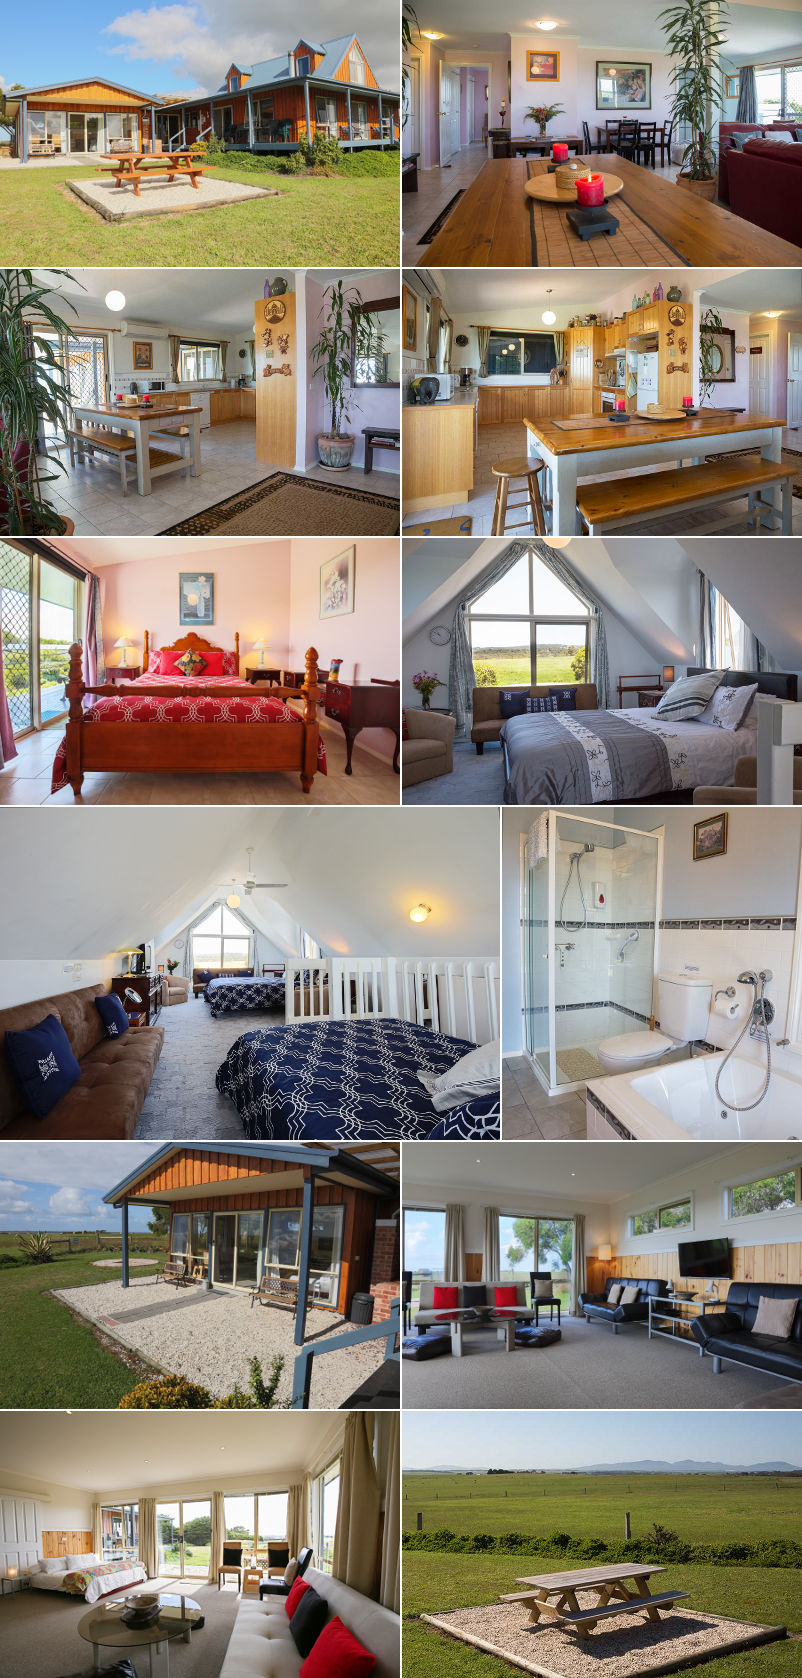 Buln Buln Cabins, Loft House & Studio - Loft House and Studio